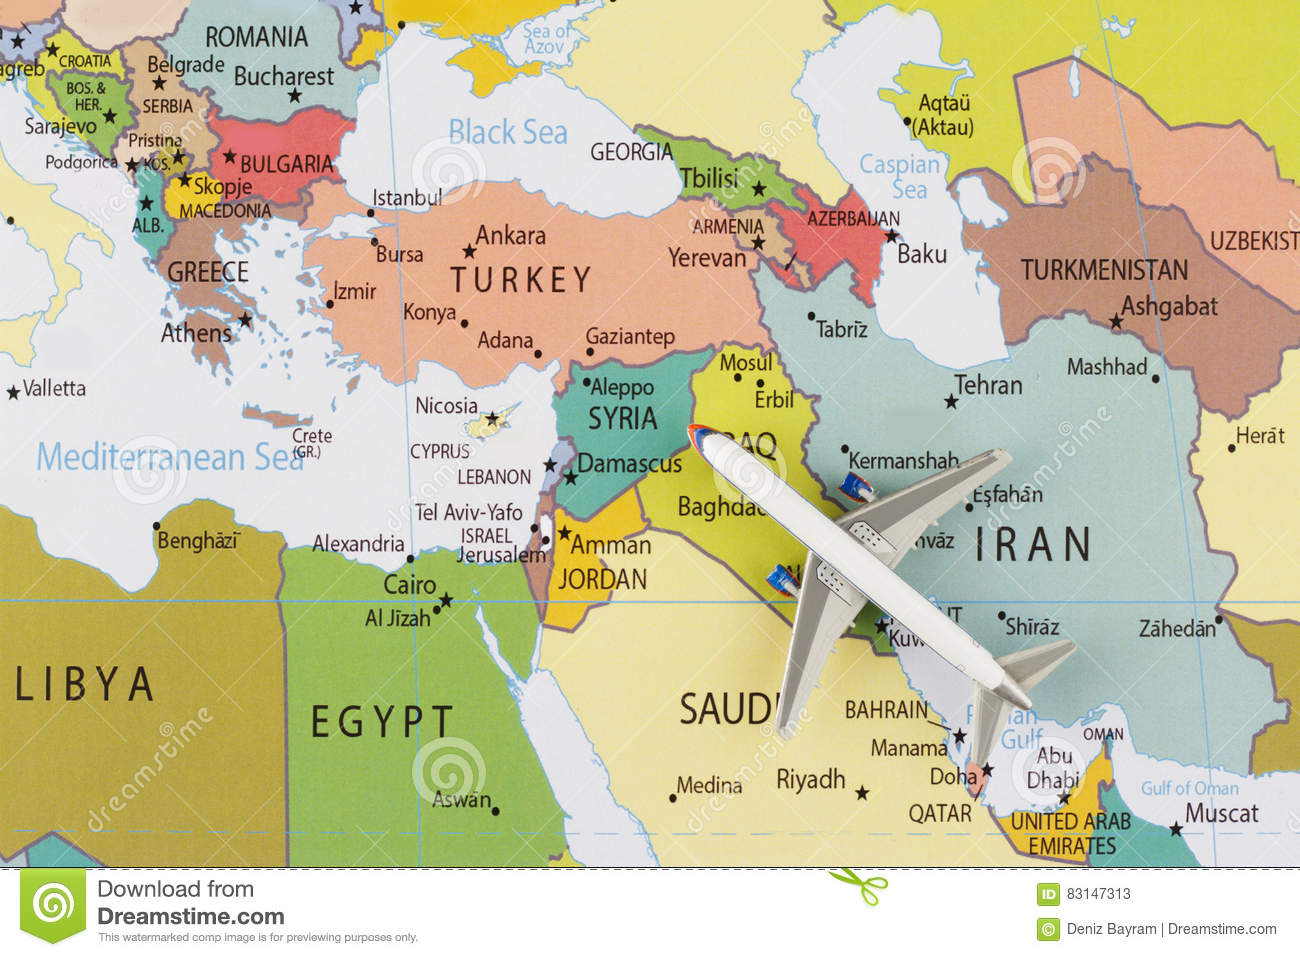 Tel Aviv Middle East Map.Airplane On Map Stock Image Image Of Greece Europe 83147313